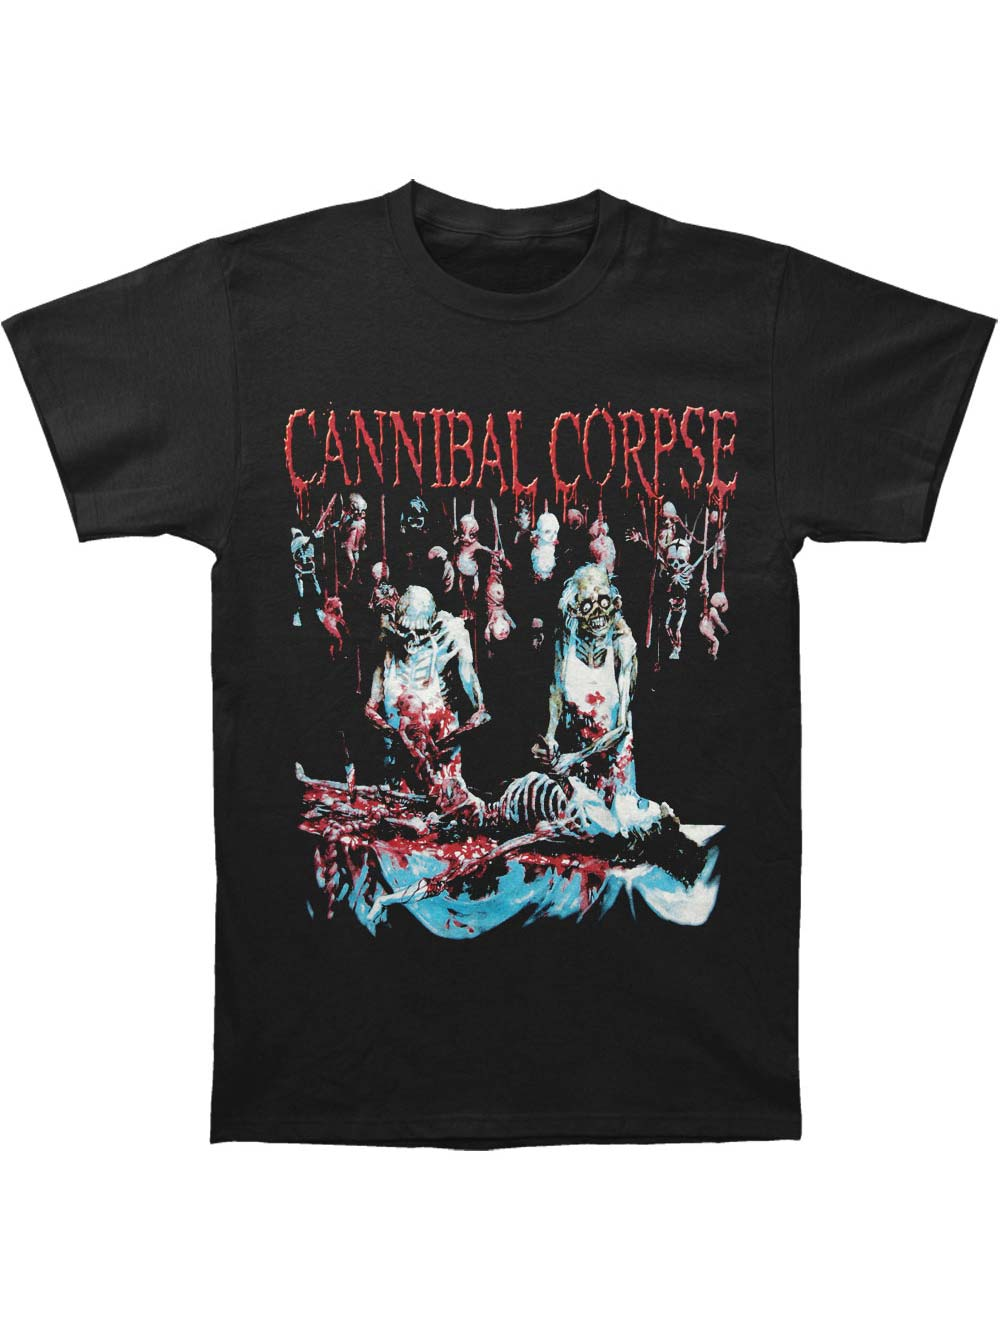 CANNIBAL CORPSE t-shirt BLACK kids shirt clothing toddler T-shirt for children